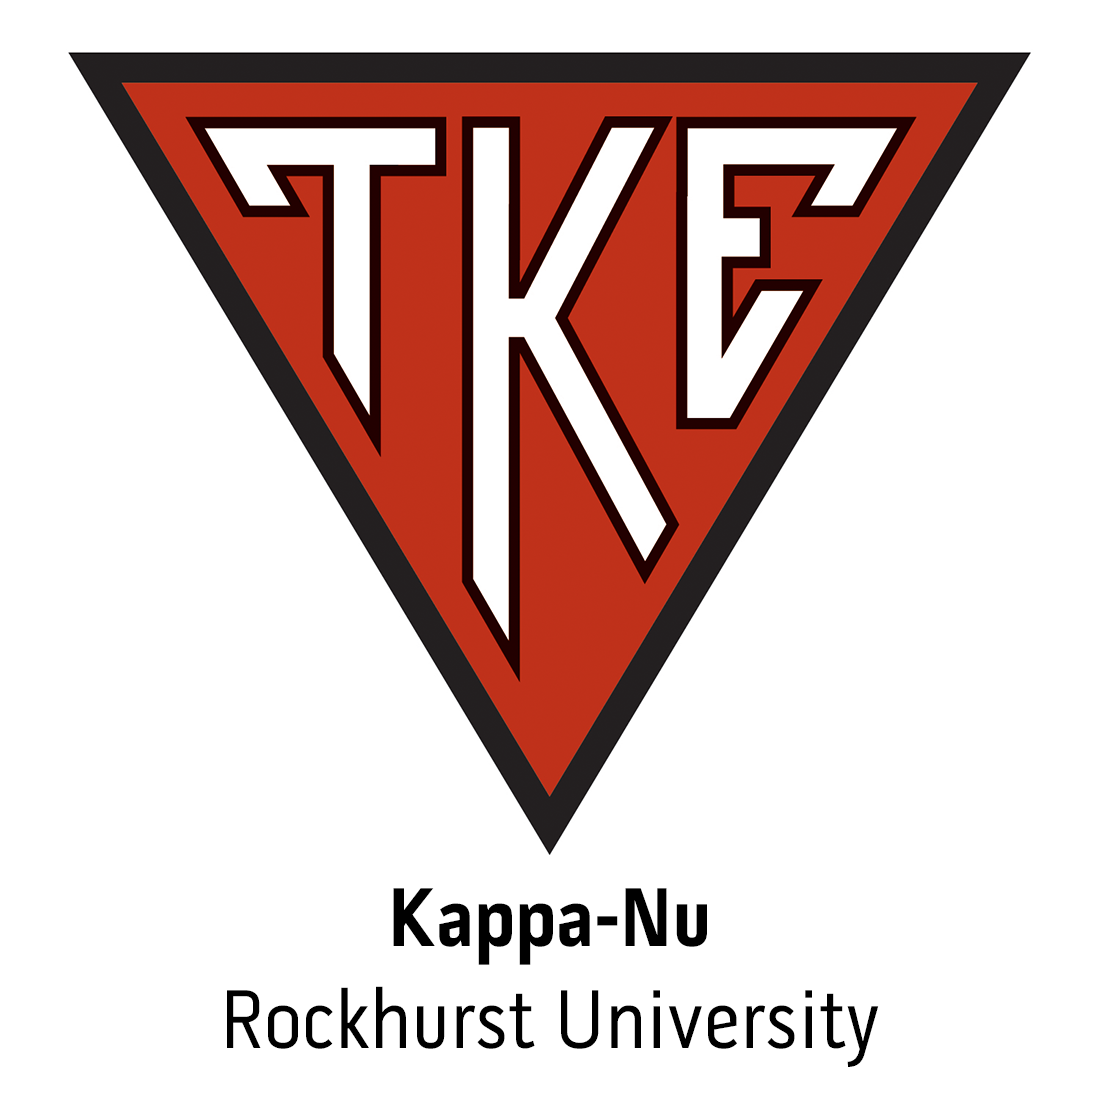 Kappa-Nu Colony at Rockhurst University